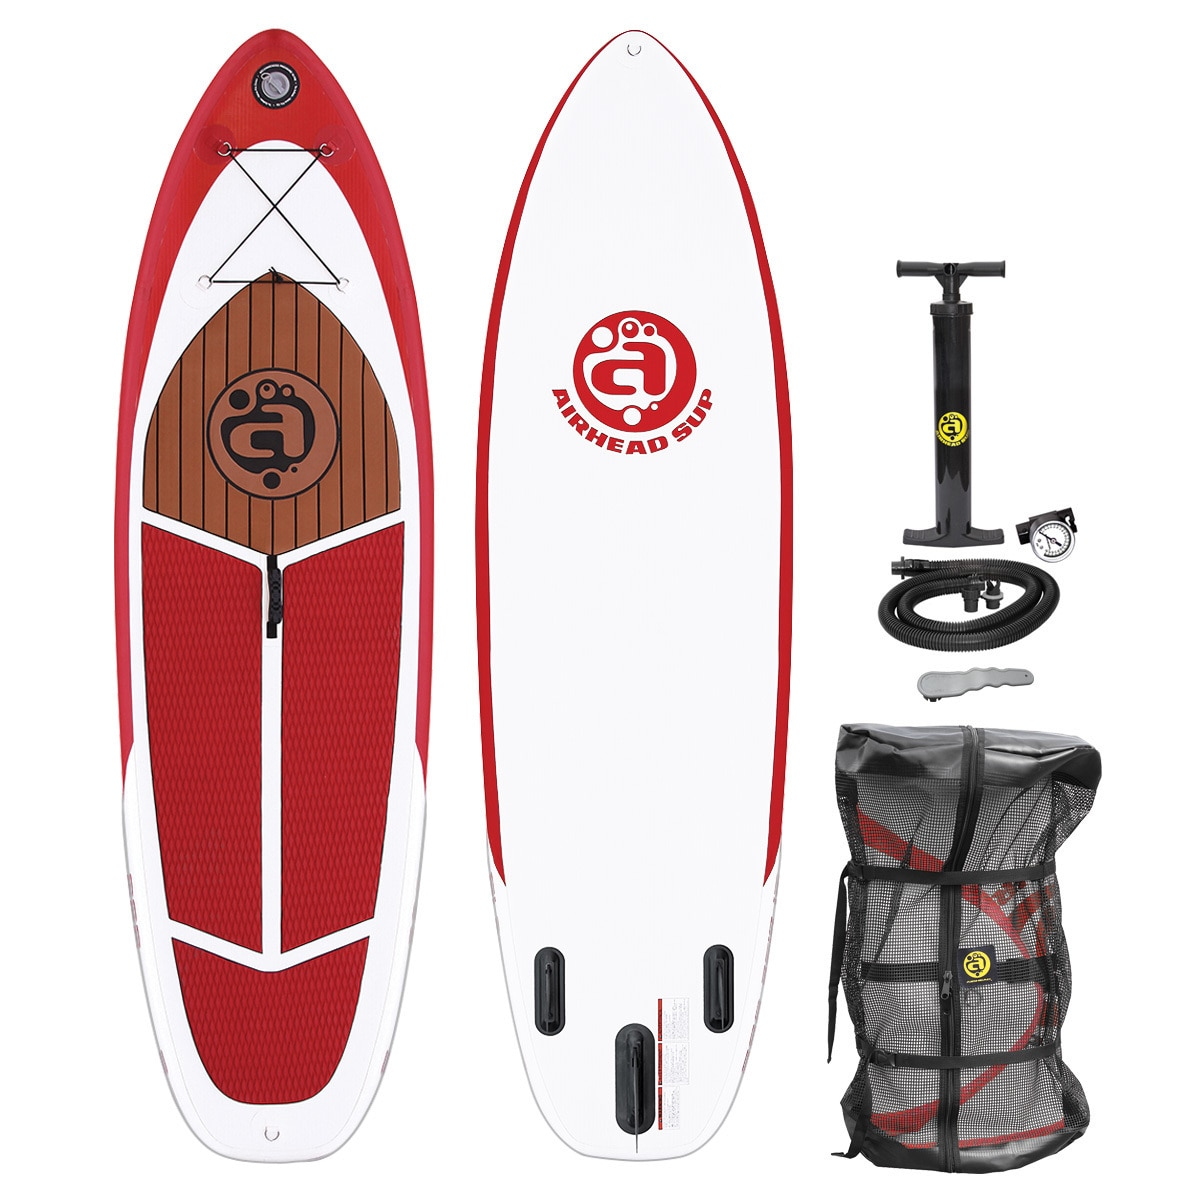 Airhead Cruise  930 White/red PVC Inflatable Stand Up Paddleboard (Stand Up Paddleboard)